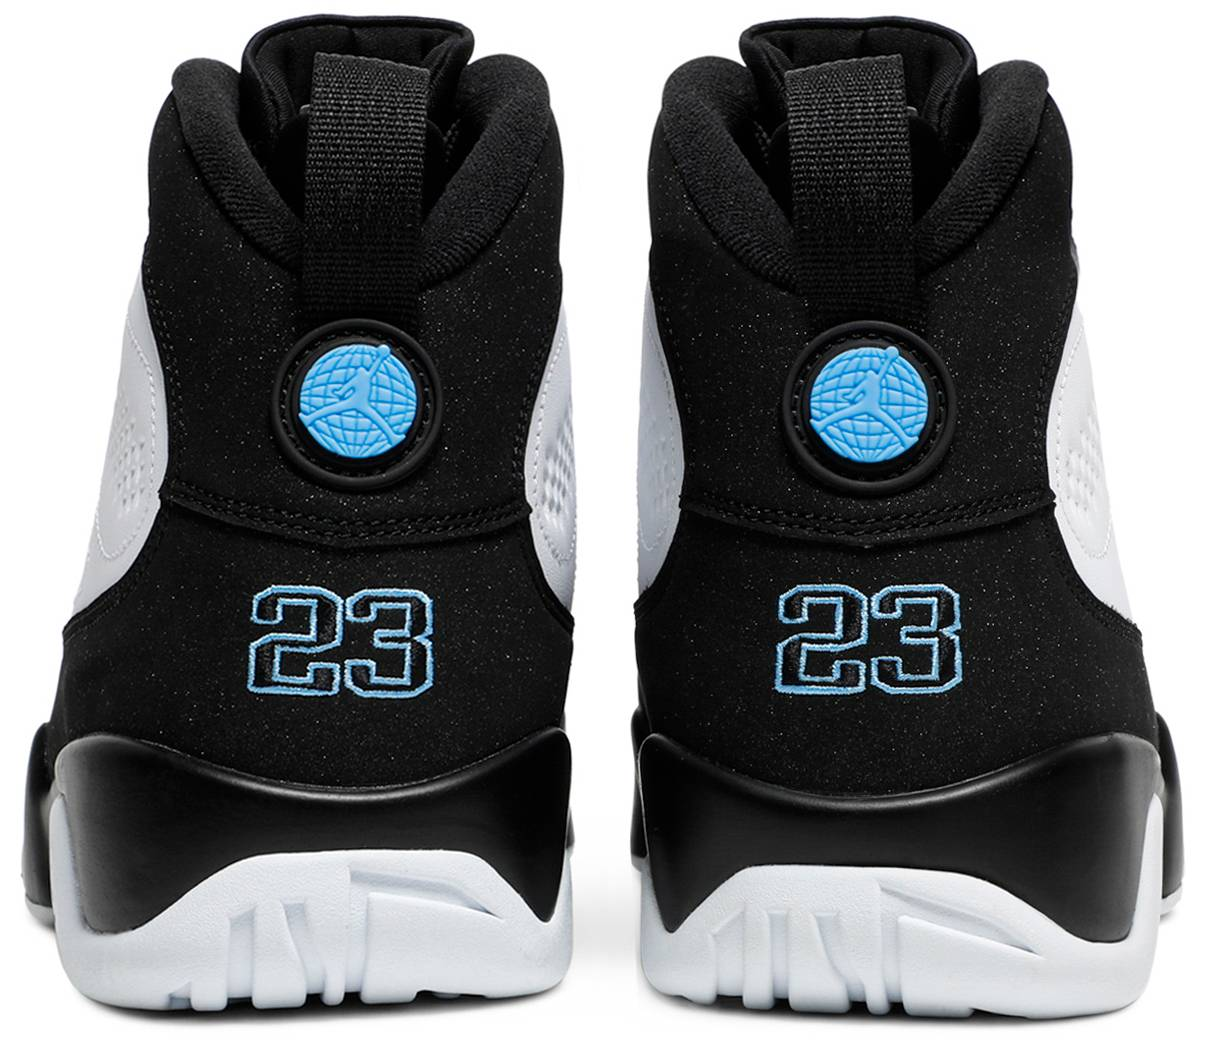 Air Jordan 9 Retro 'University Blue'